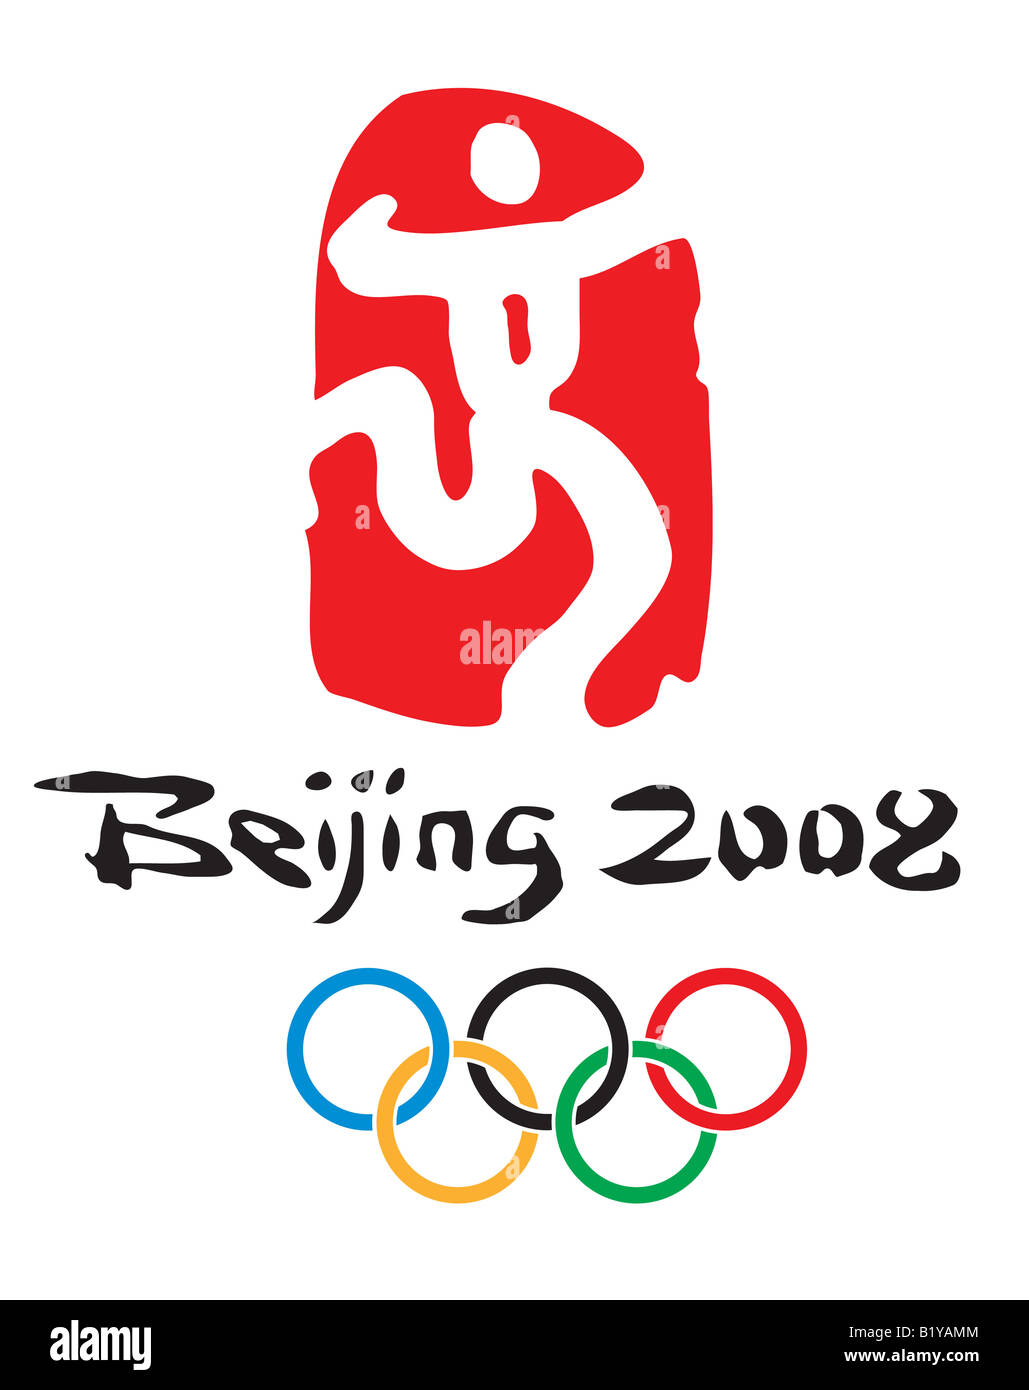 China Beijing Olympic Games official logo - Stock Image